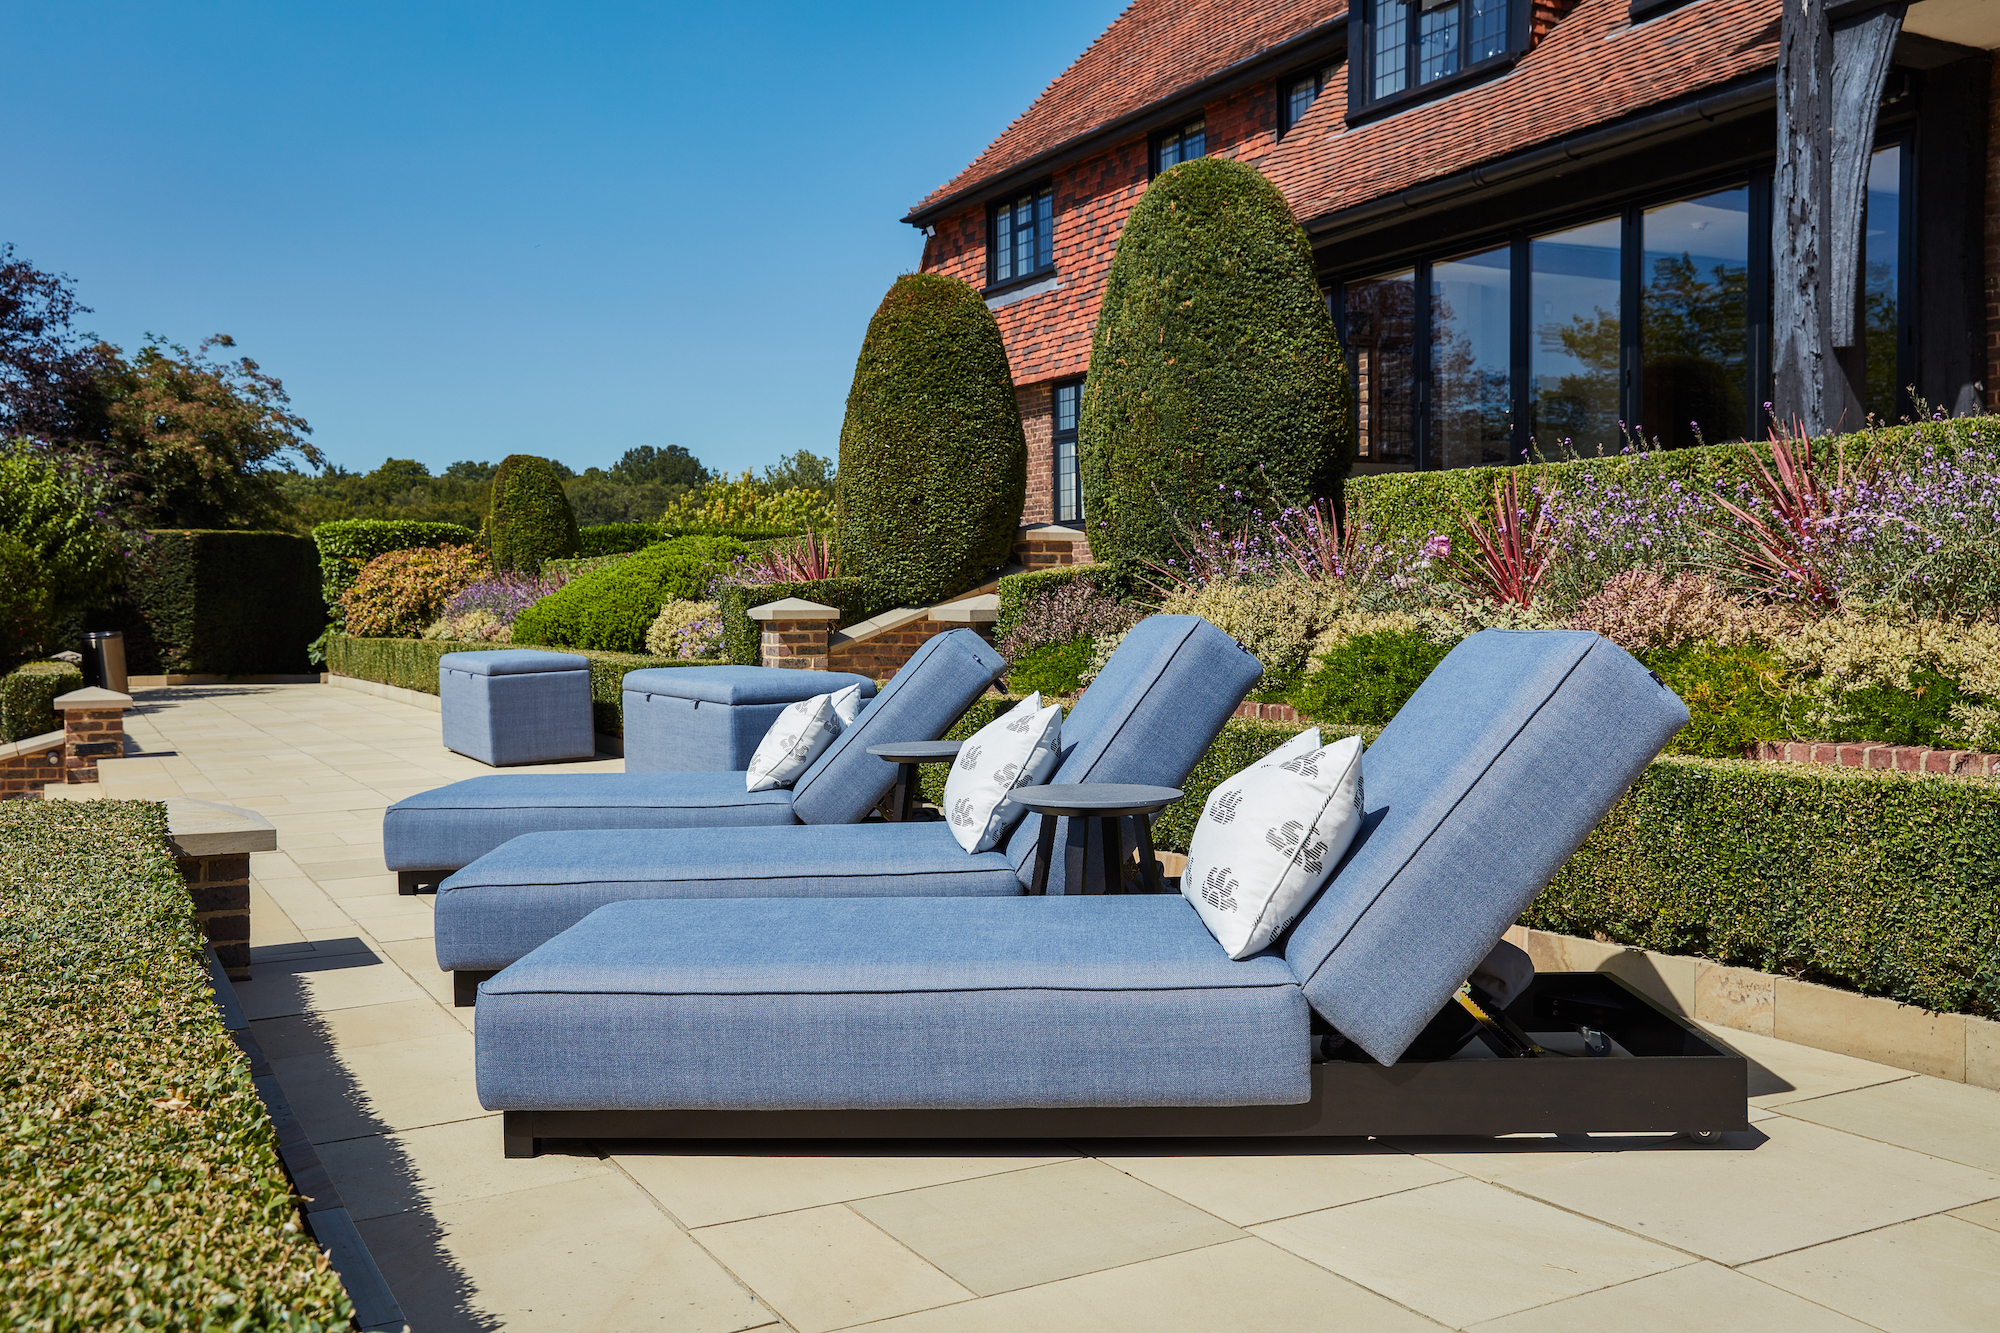 Outdoor luxury loungers